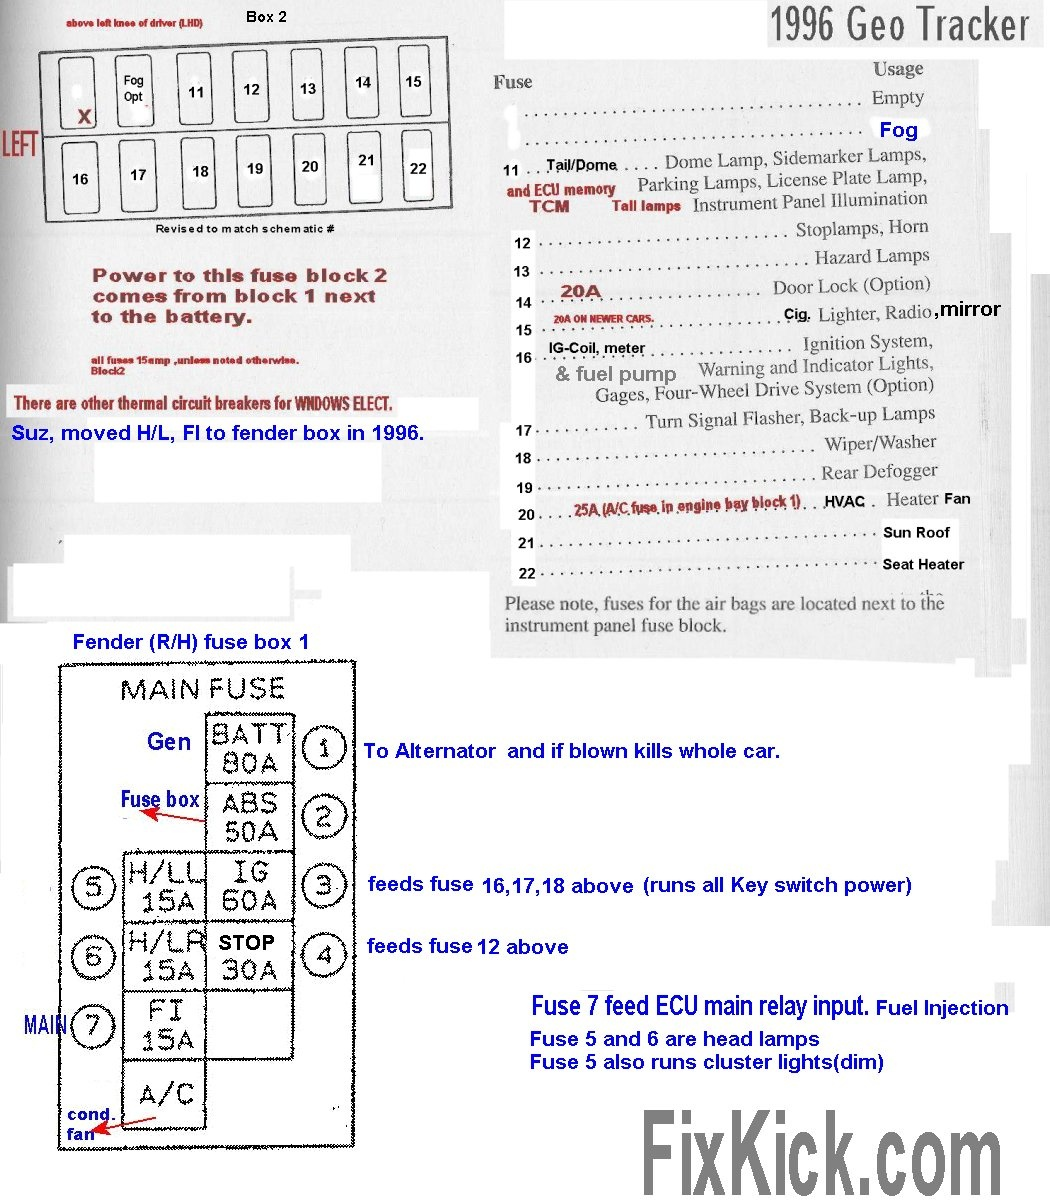 94 Chevy Geo Fuse Box Diagram - wiring diagram power-load -  power-load.eugeniovazzano.it | Bass Tracker Fuse Block Diagram |  | Eugenio Vazzano